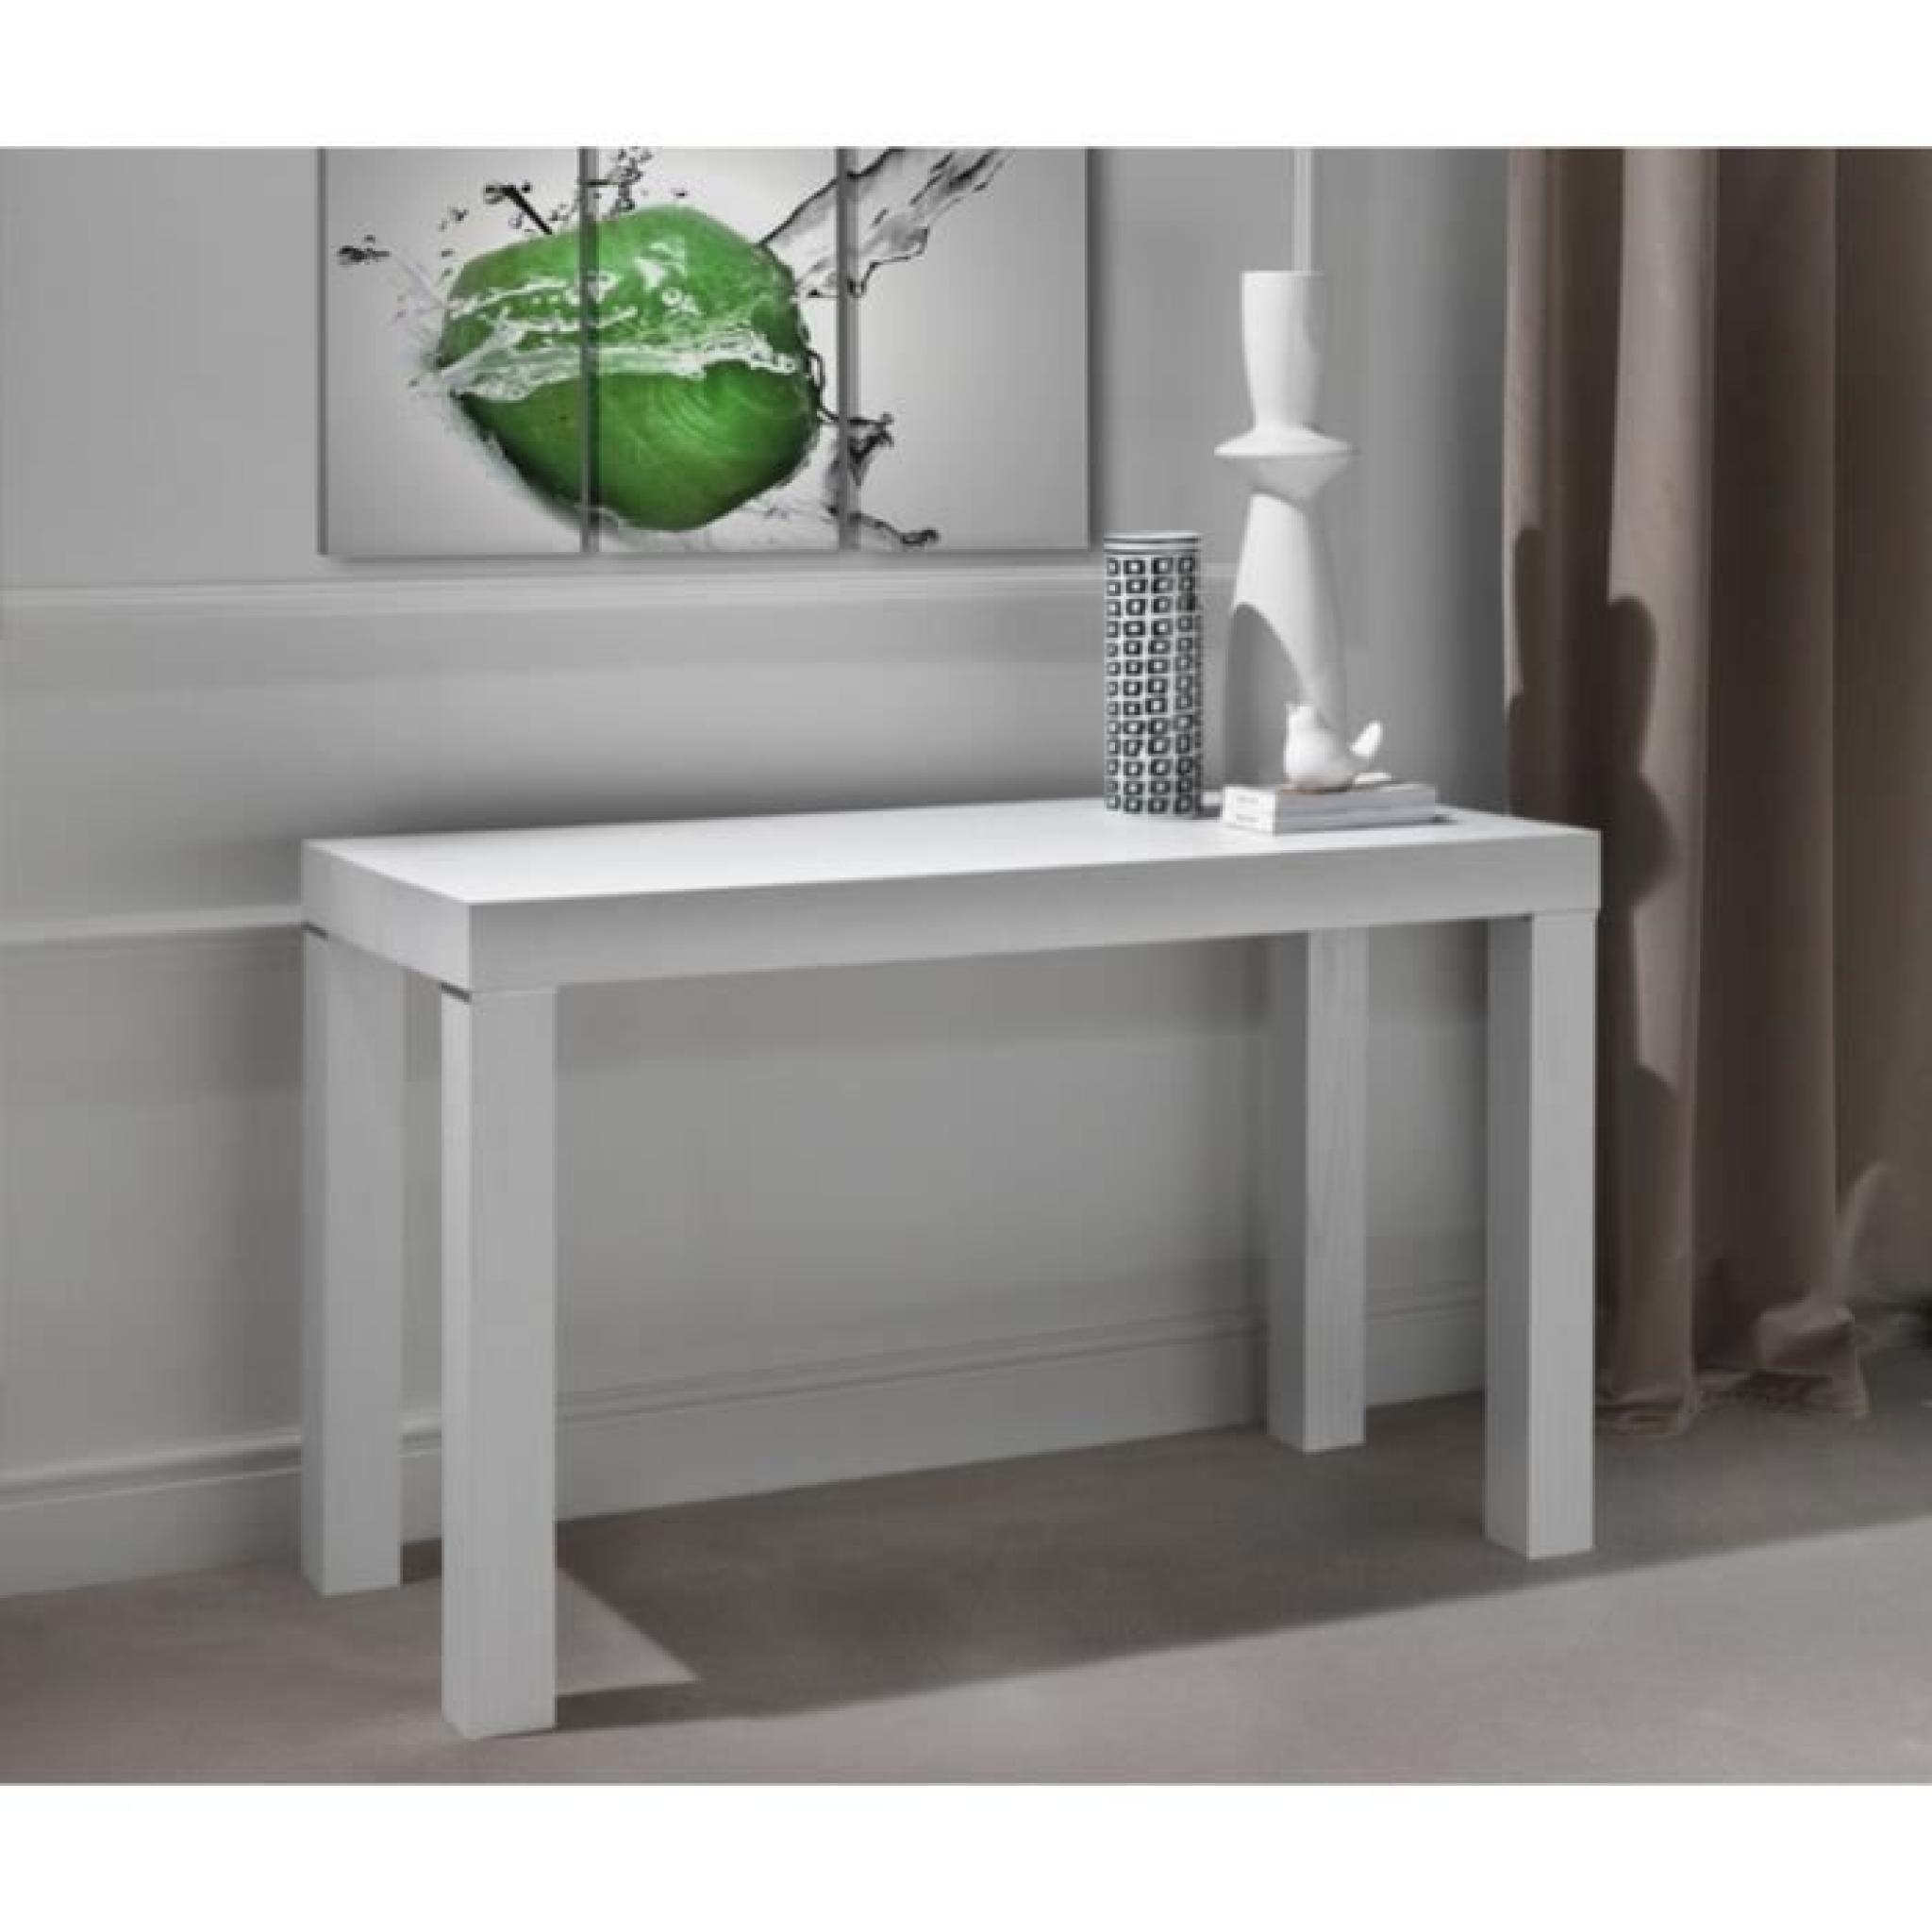 Meuble Transformable Console Murale Transformable En Table Blanc Laurine 3